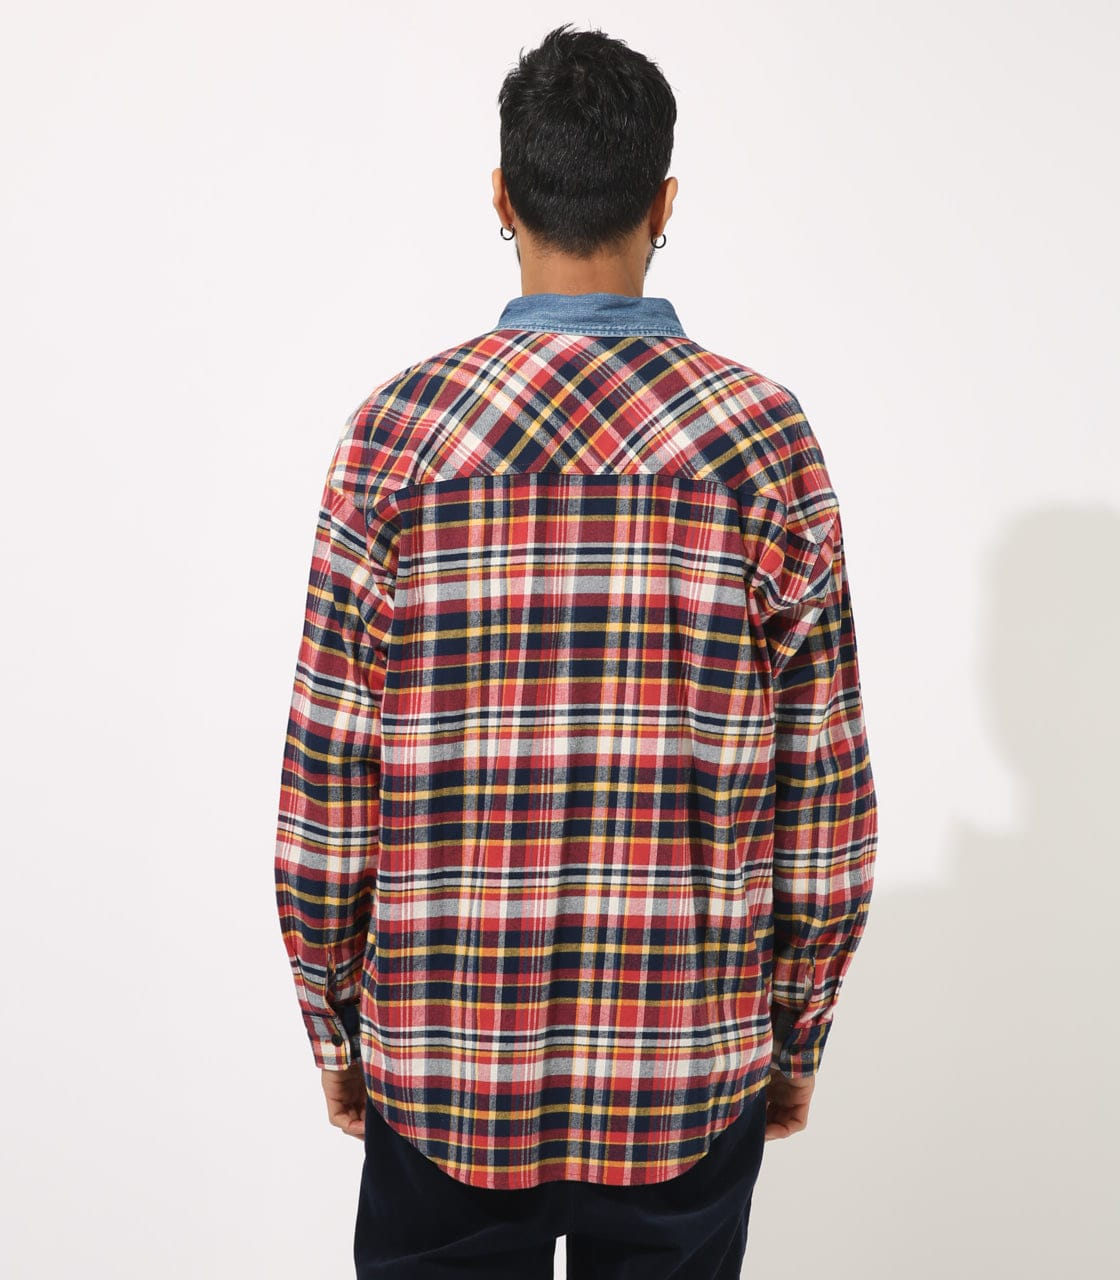 【AZUL BY MOUSSY】DENIM COLLAR BIG CHECK SHIRT 詳細画像 柄RED 7